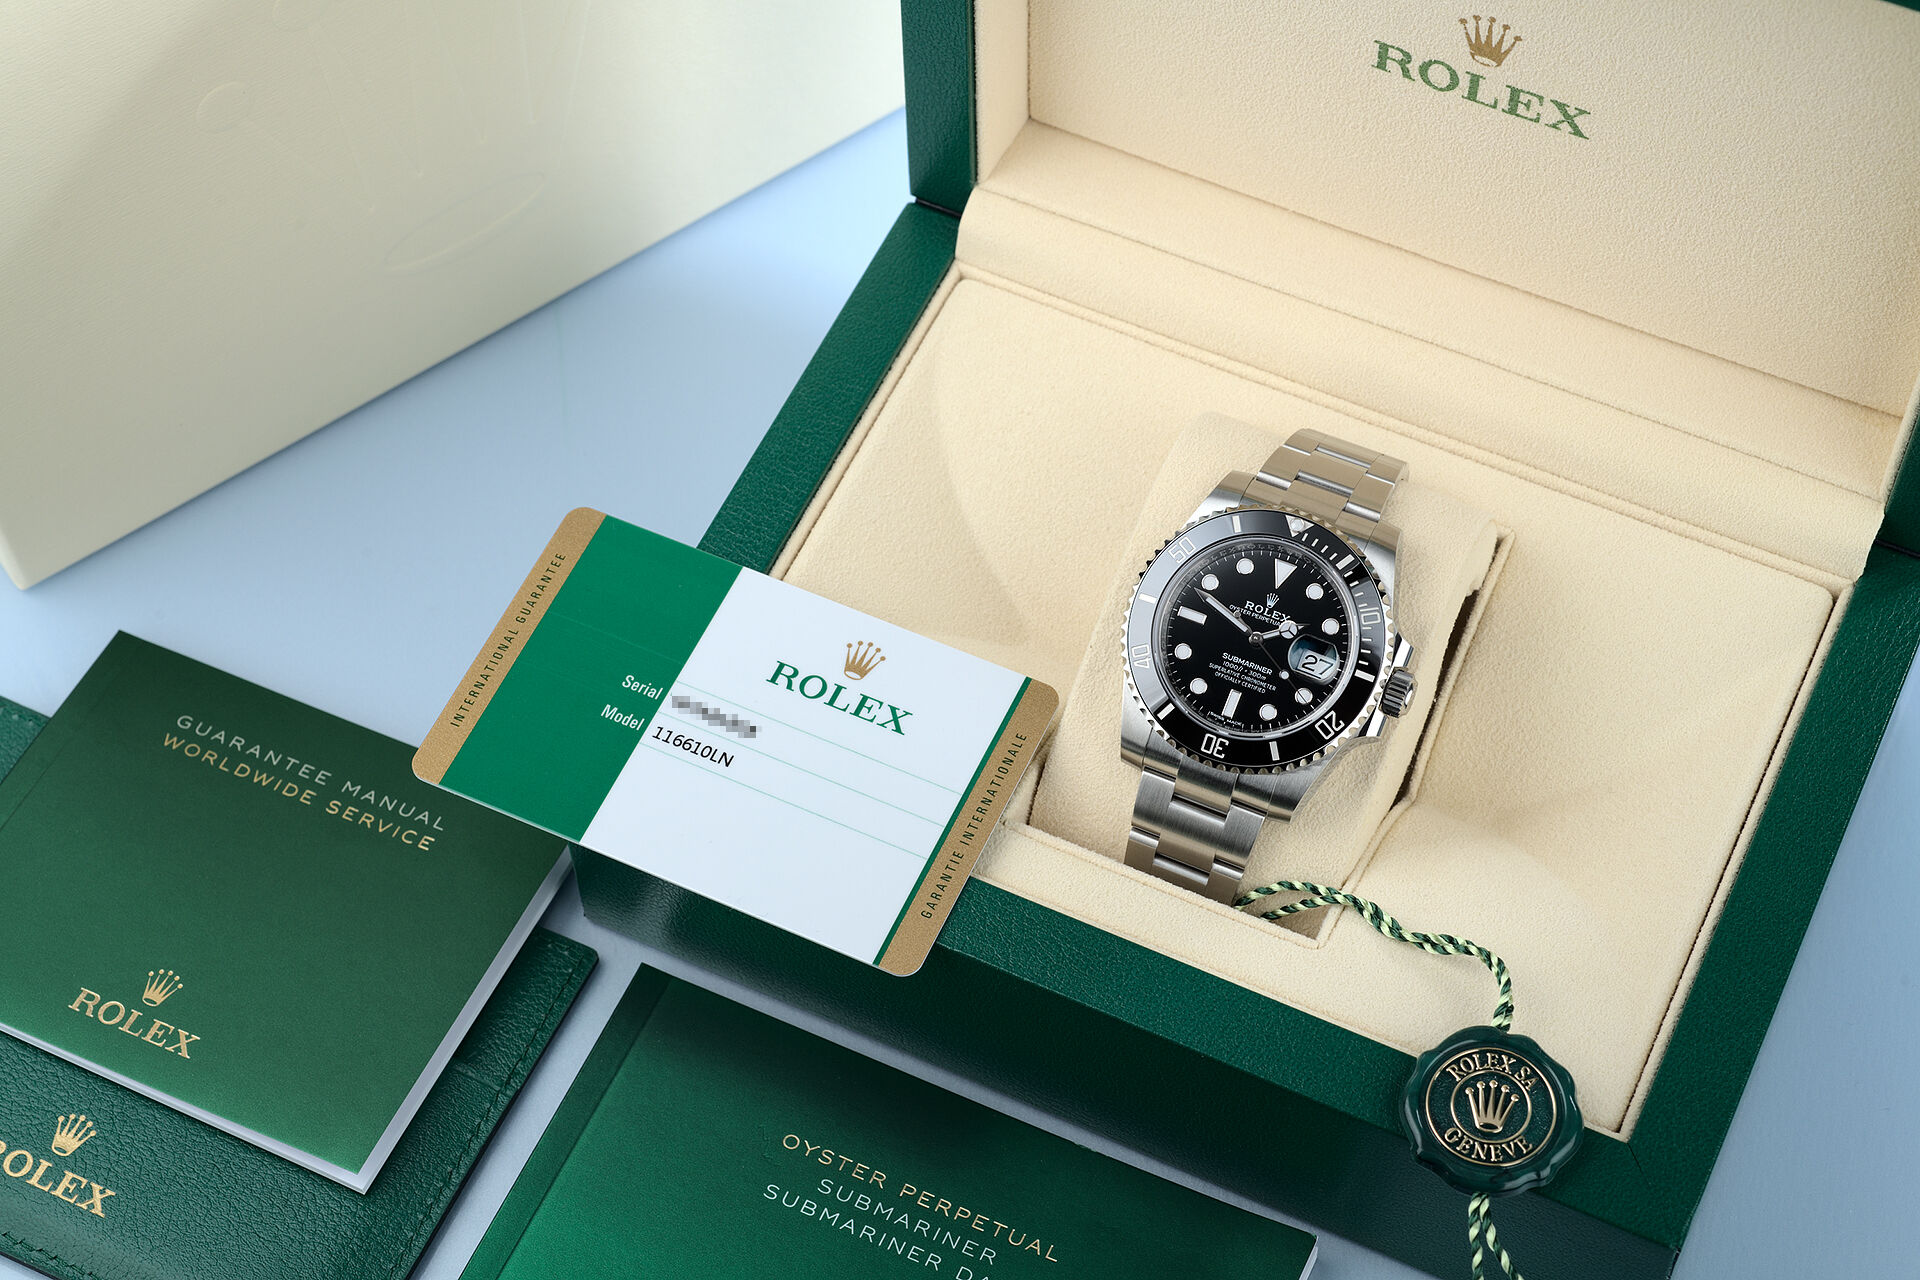 ref 116610LN | Under Warranty to 2025 | Rolex Submariner Date